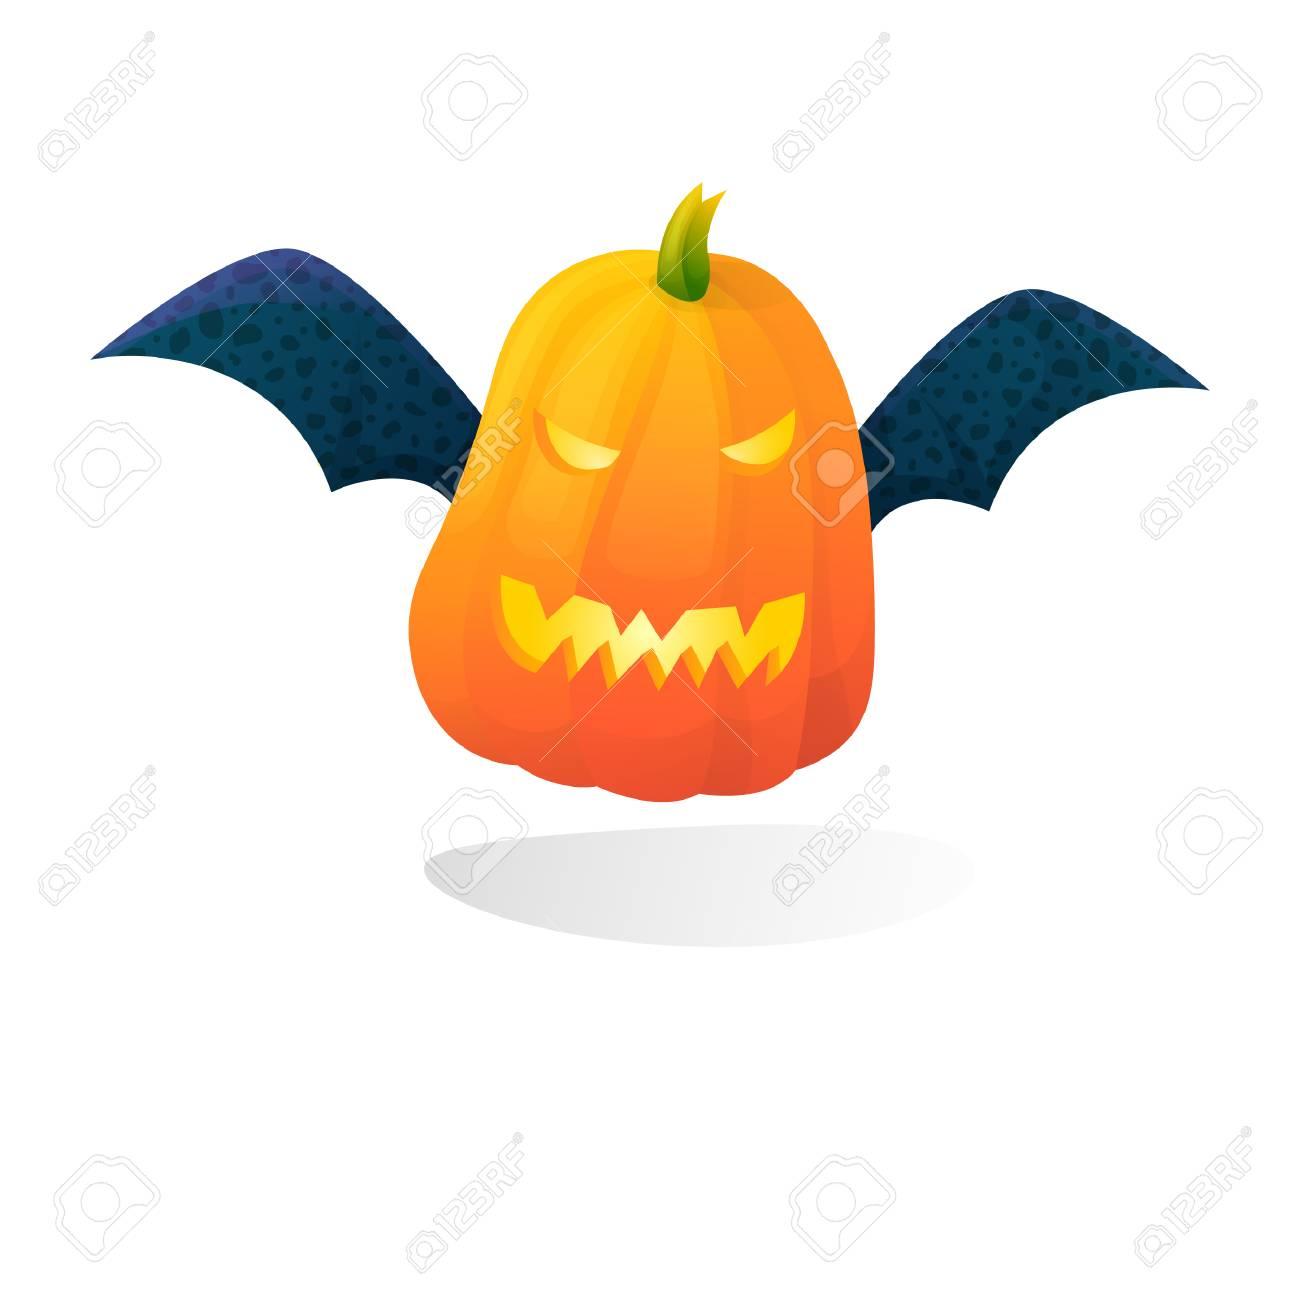 Vector Halloween Scary Bat Pumpkin Isolated On White Background Royalty Free Cliparts Vectors And Stock Illustration Image 111585808